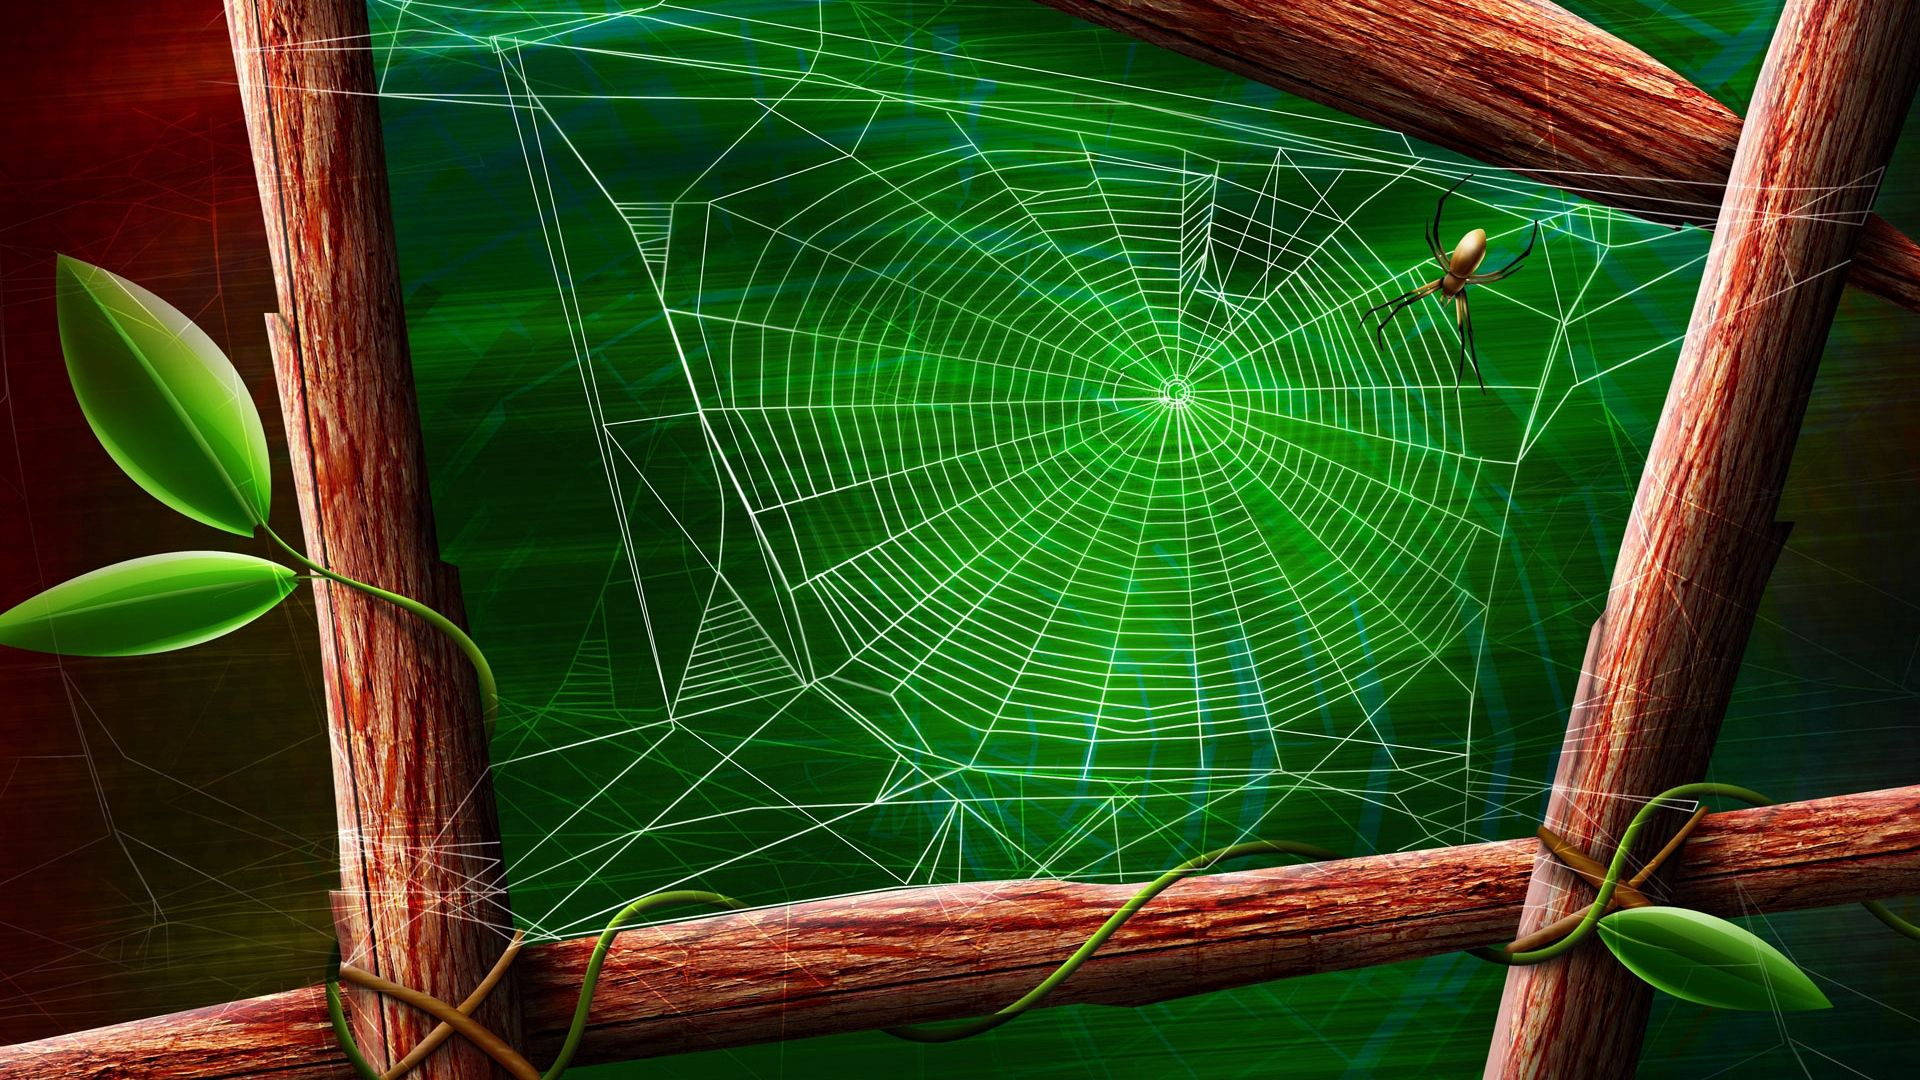 119247 download wallpaper Vector, Web, Leaves, Wood, Wooden, Branches, Spider screensavers and pictures for free